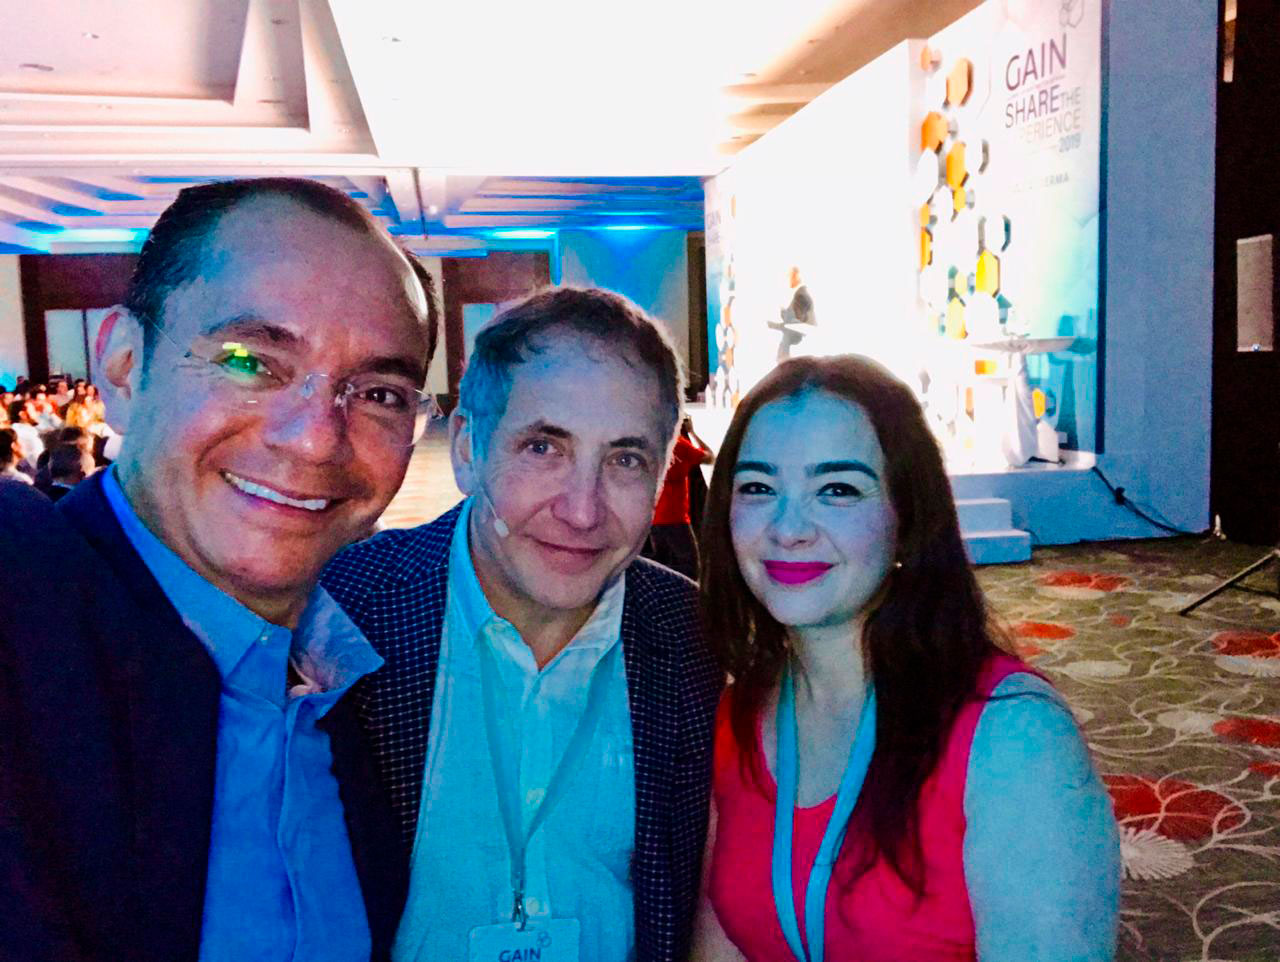 Gain share the experience 2019 Galderma Aesthetics Dr. Frank Rosengaus